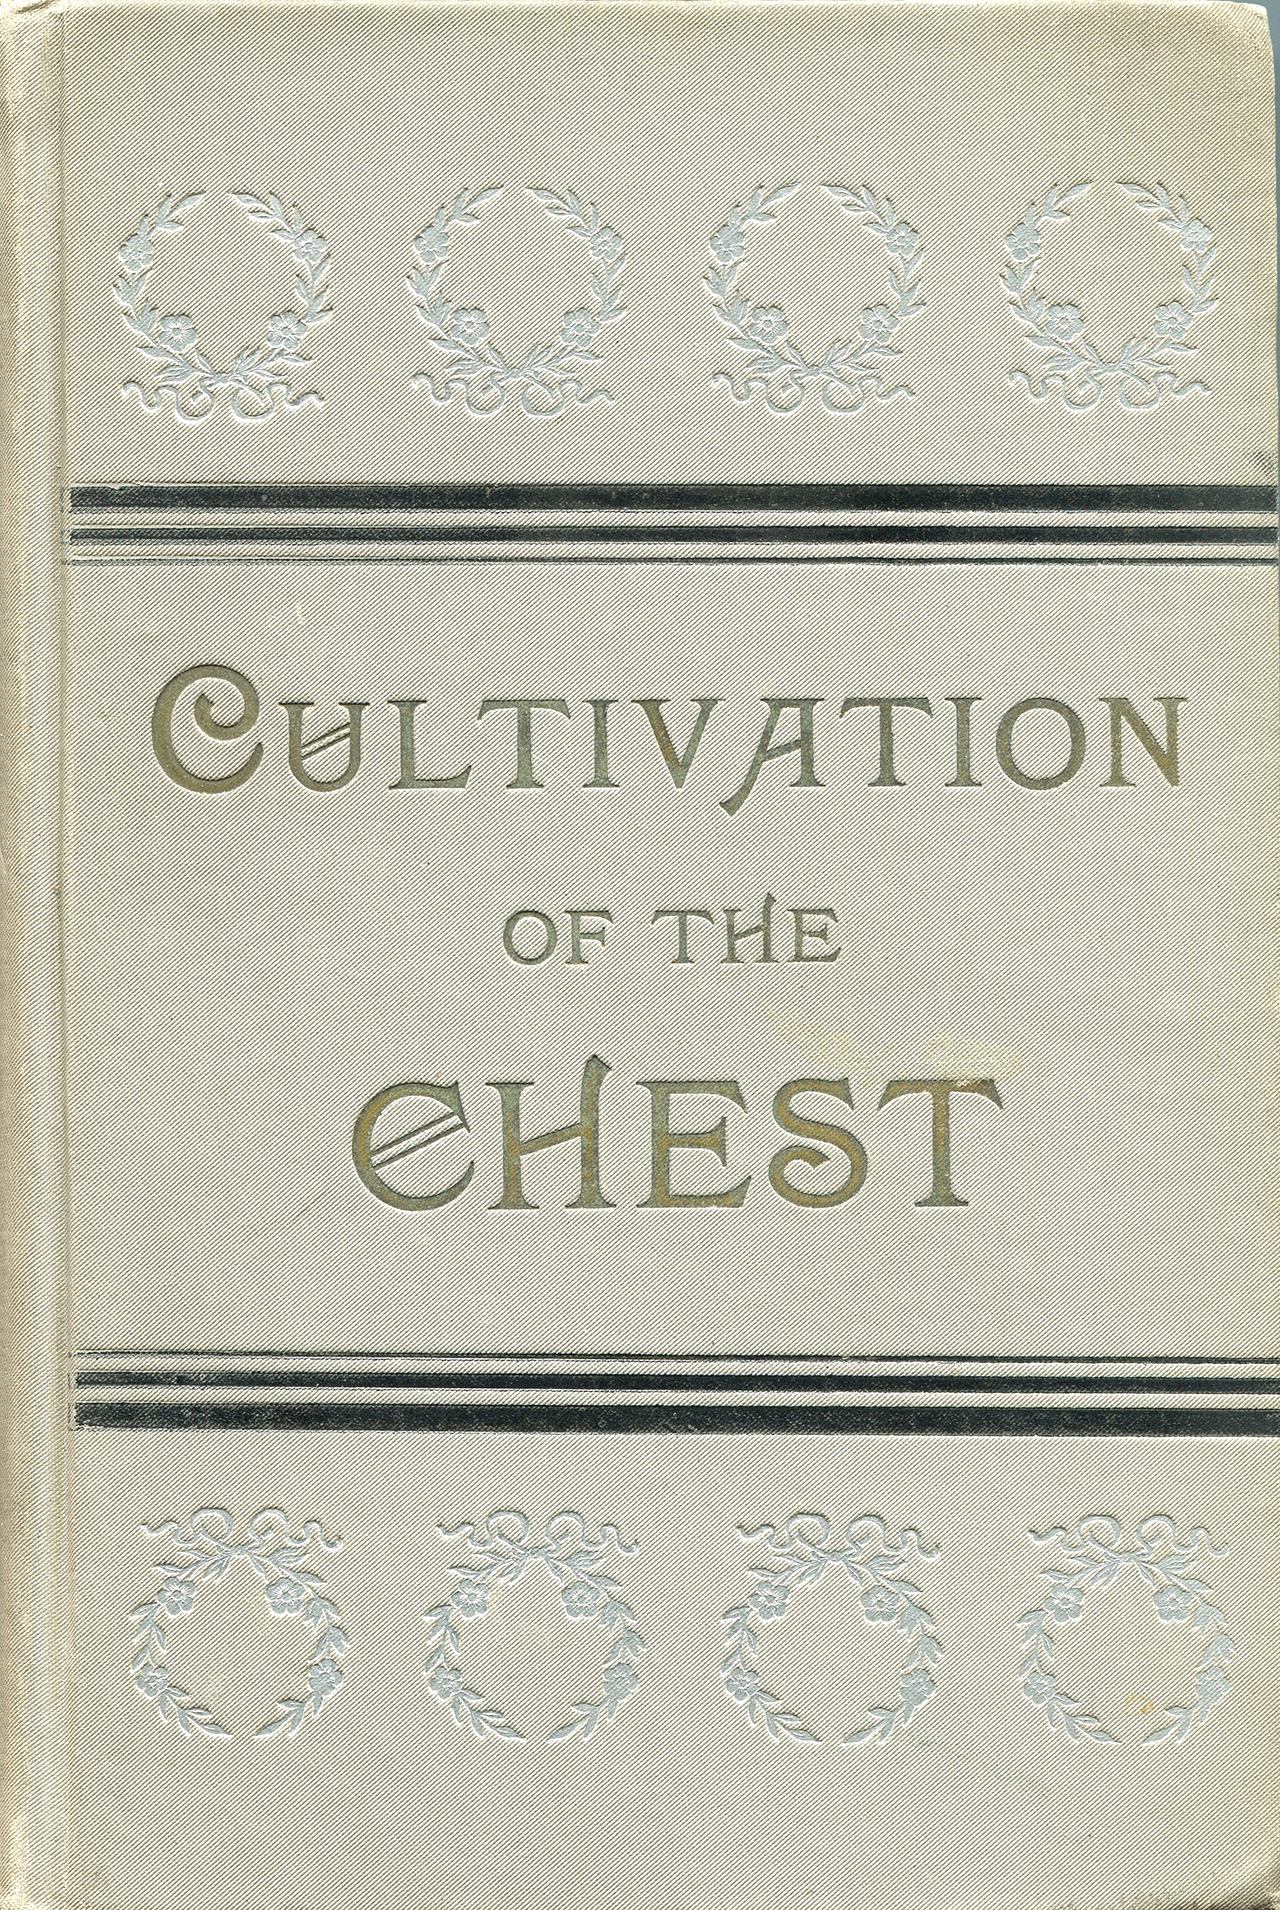 cultivation_of_the_chest.jpg